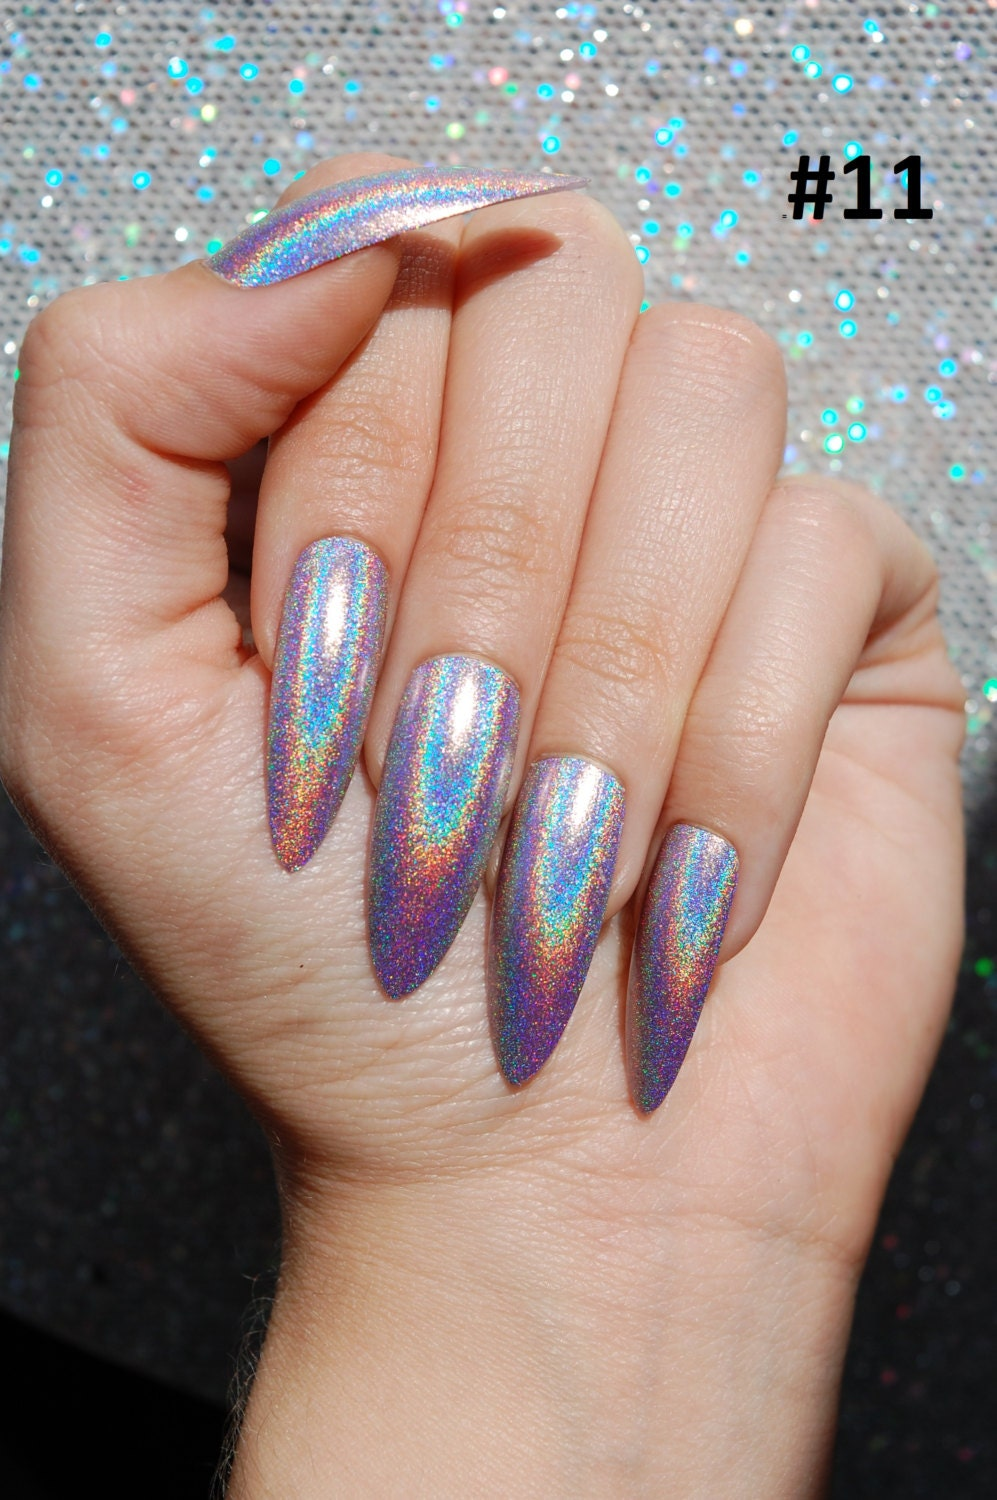 Stiletto Nails Fake Nails Matte Nails Blue Press On Nails: Holo XL Extra Long Stiletto Almond Nails COLOR OPTIONS Set